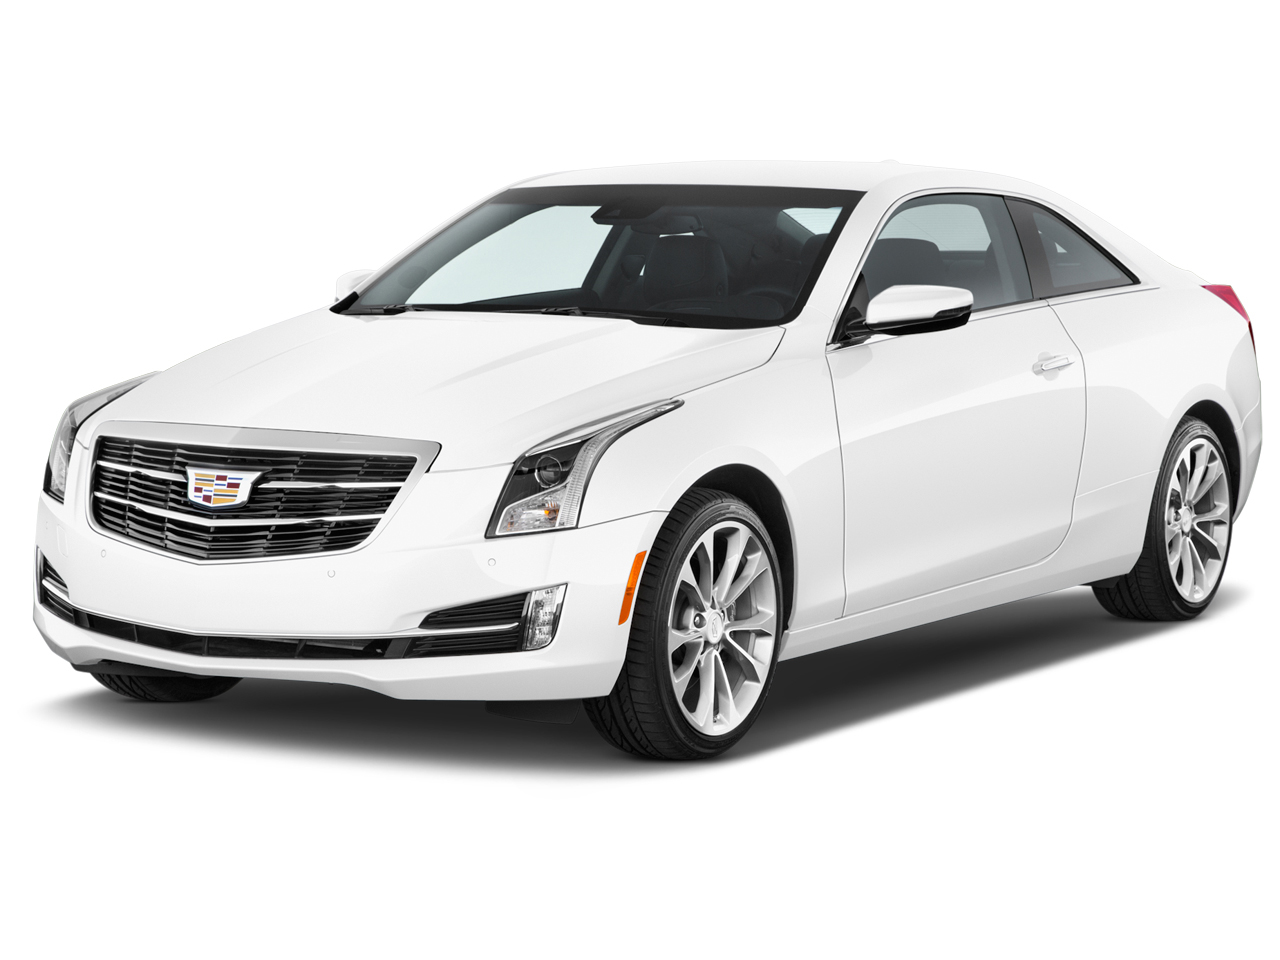 2017 Cadillac Ats 3.6 L Premium Performance >> 2018 Cadillac ATS Coupe Review, Ratings, Specs, Prices